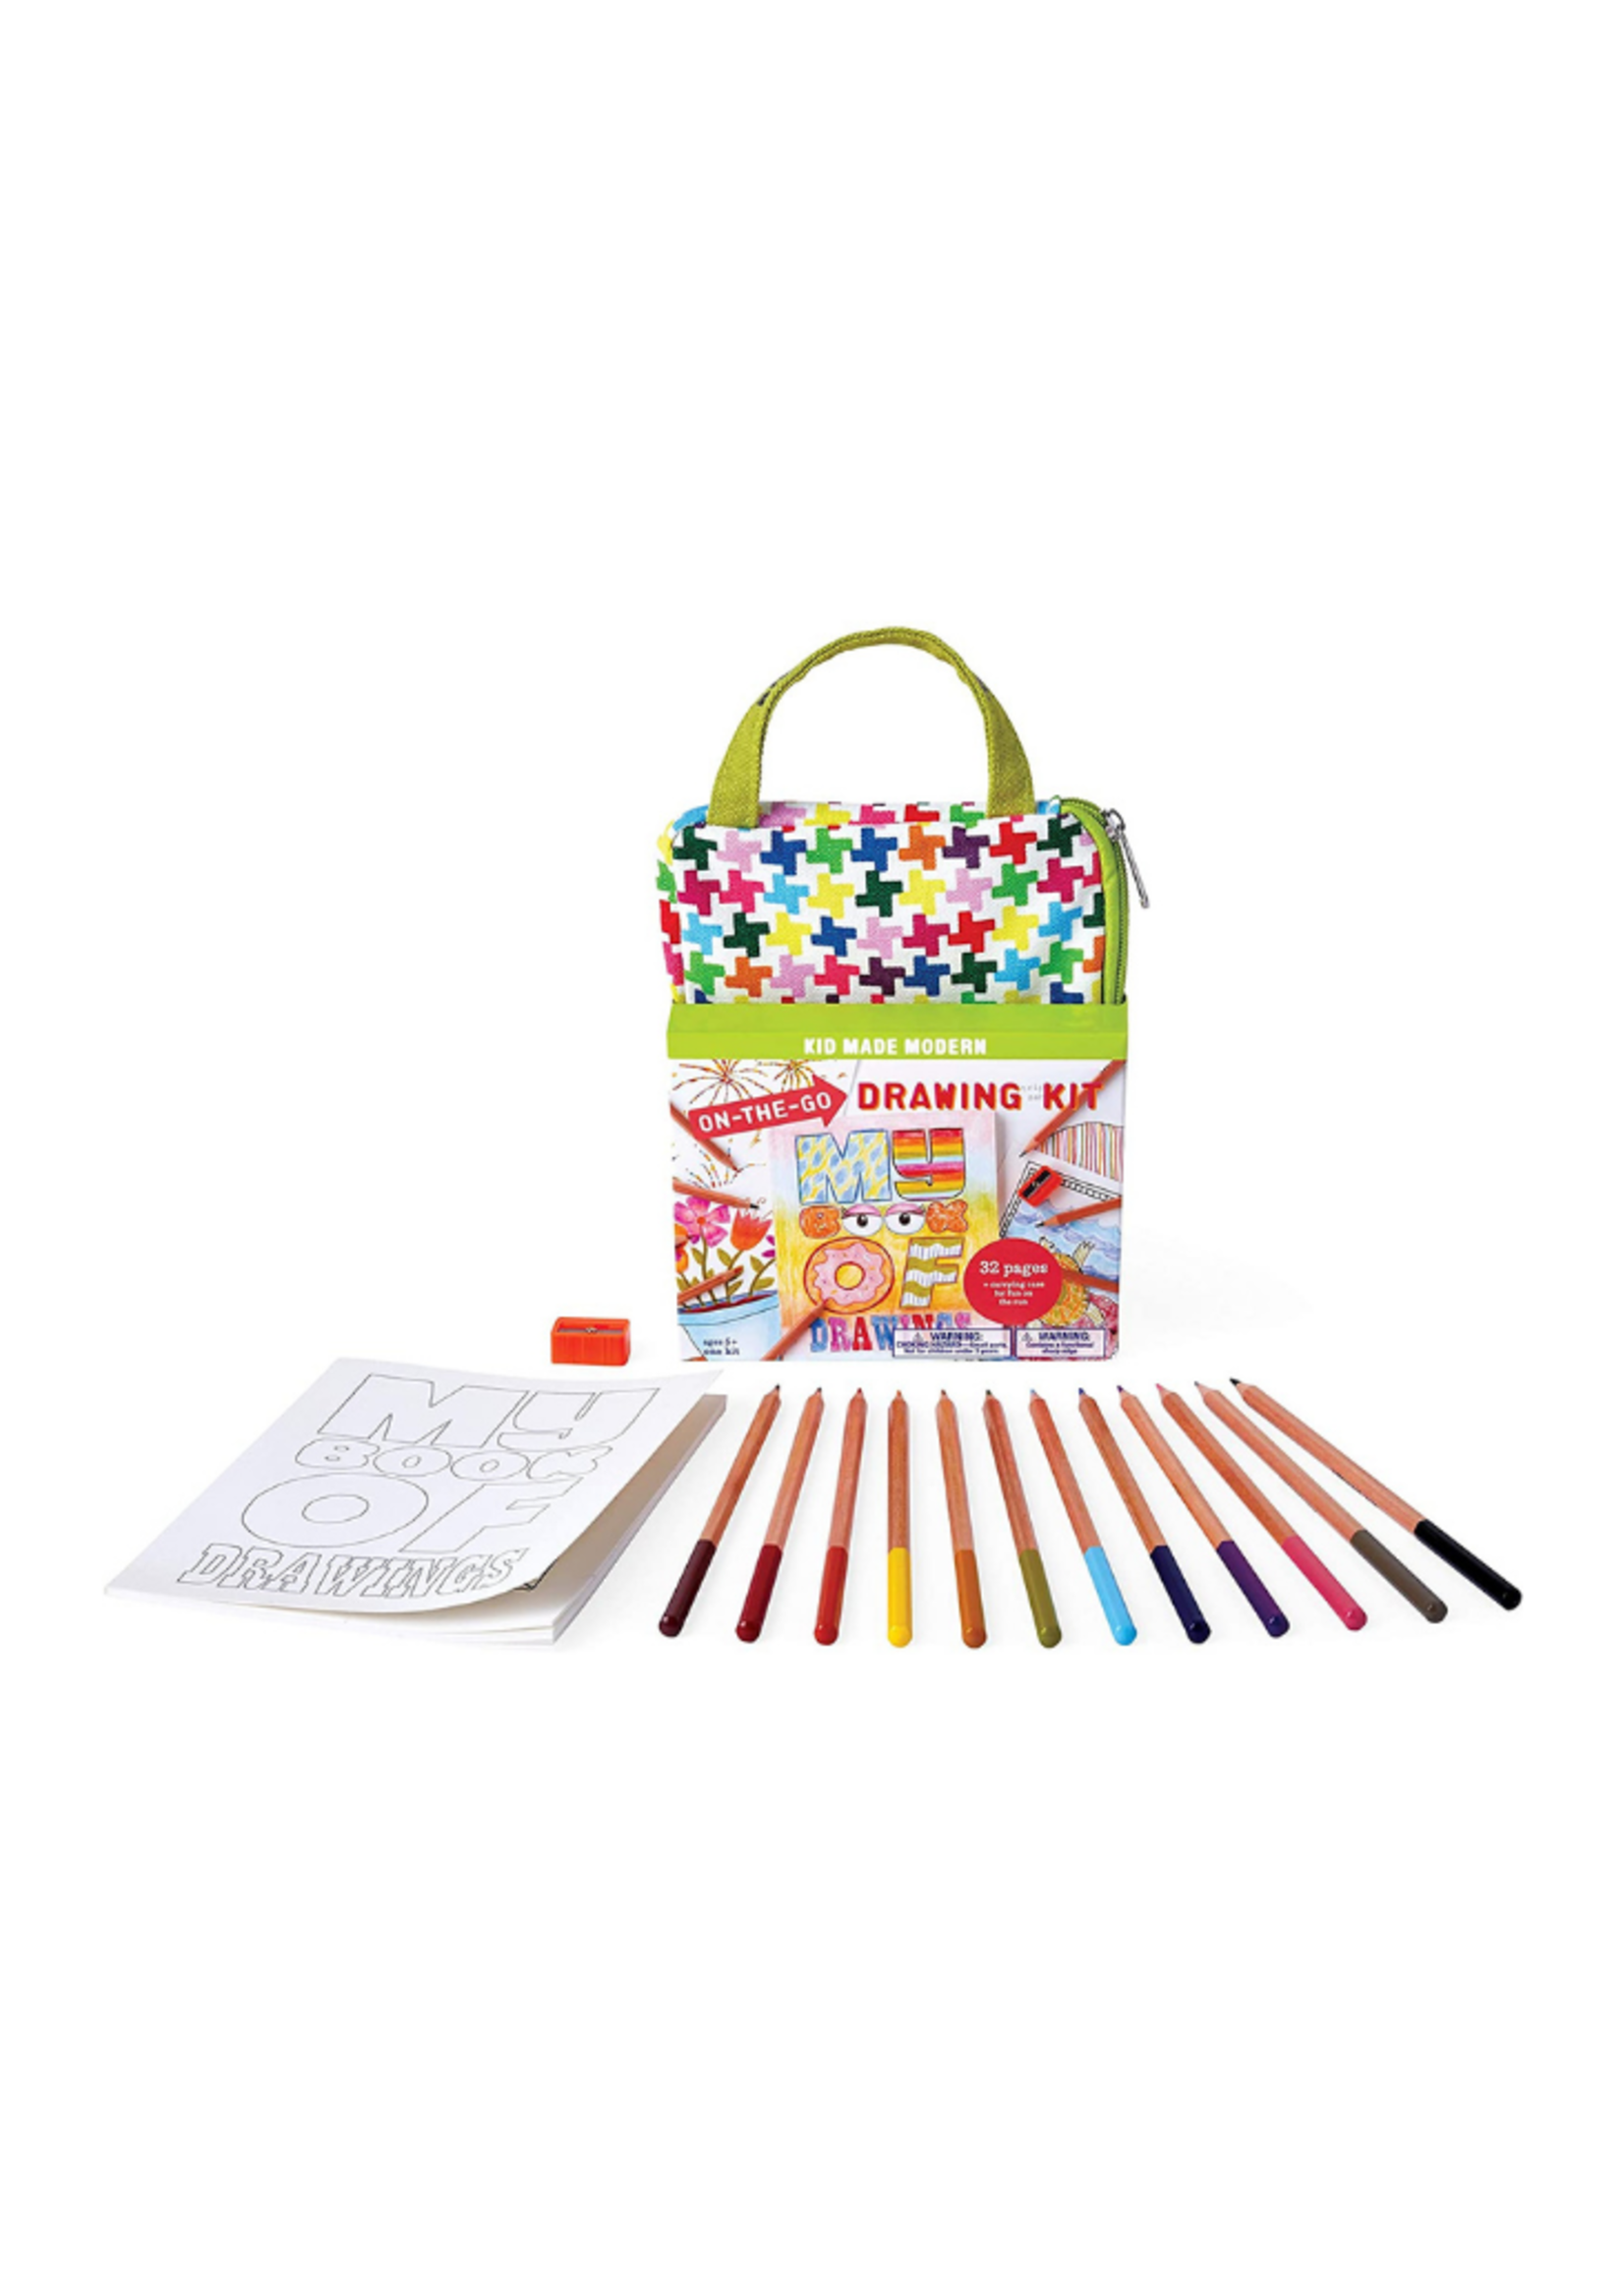 Kids Made Modern On the Go Drawing Kit